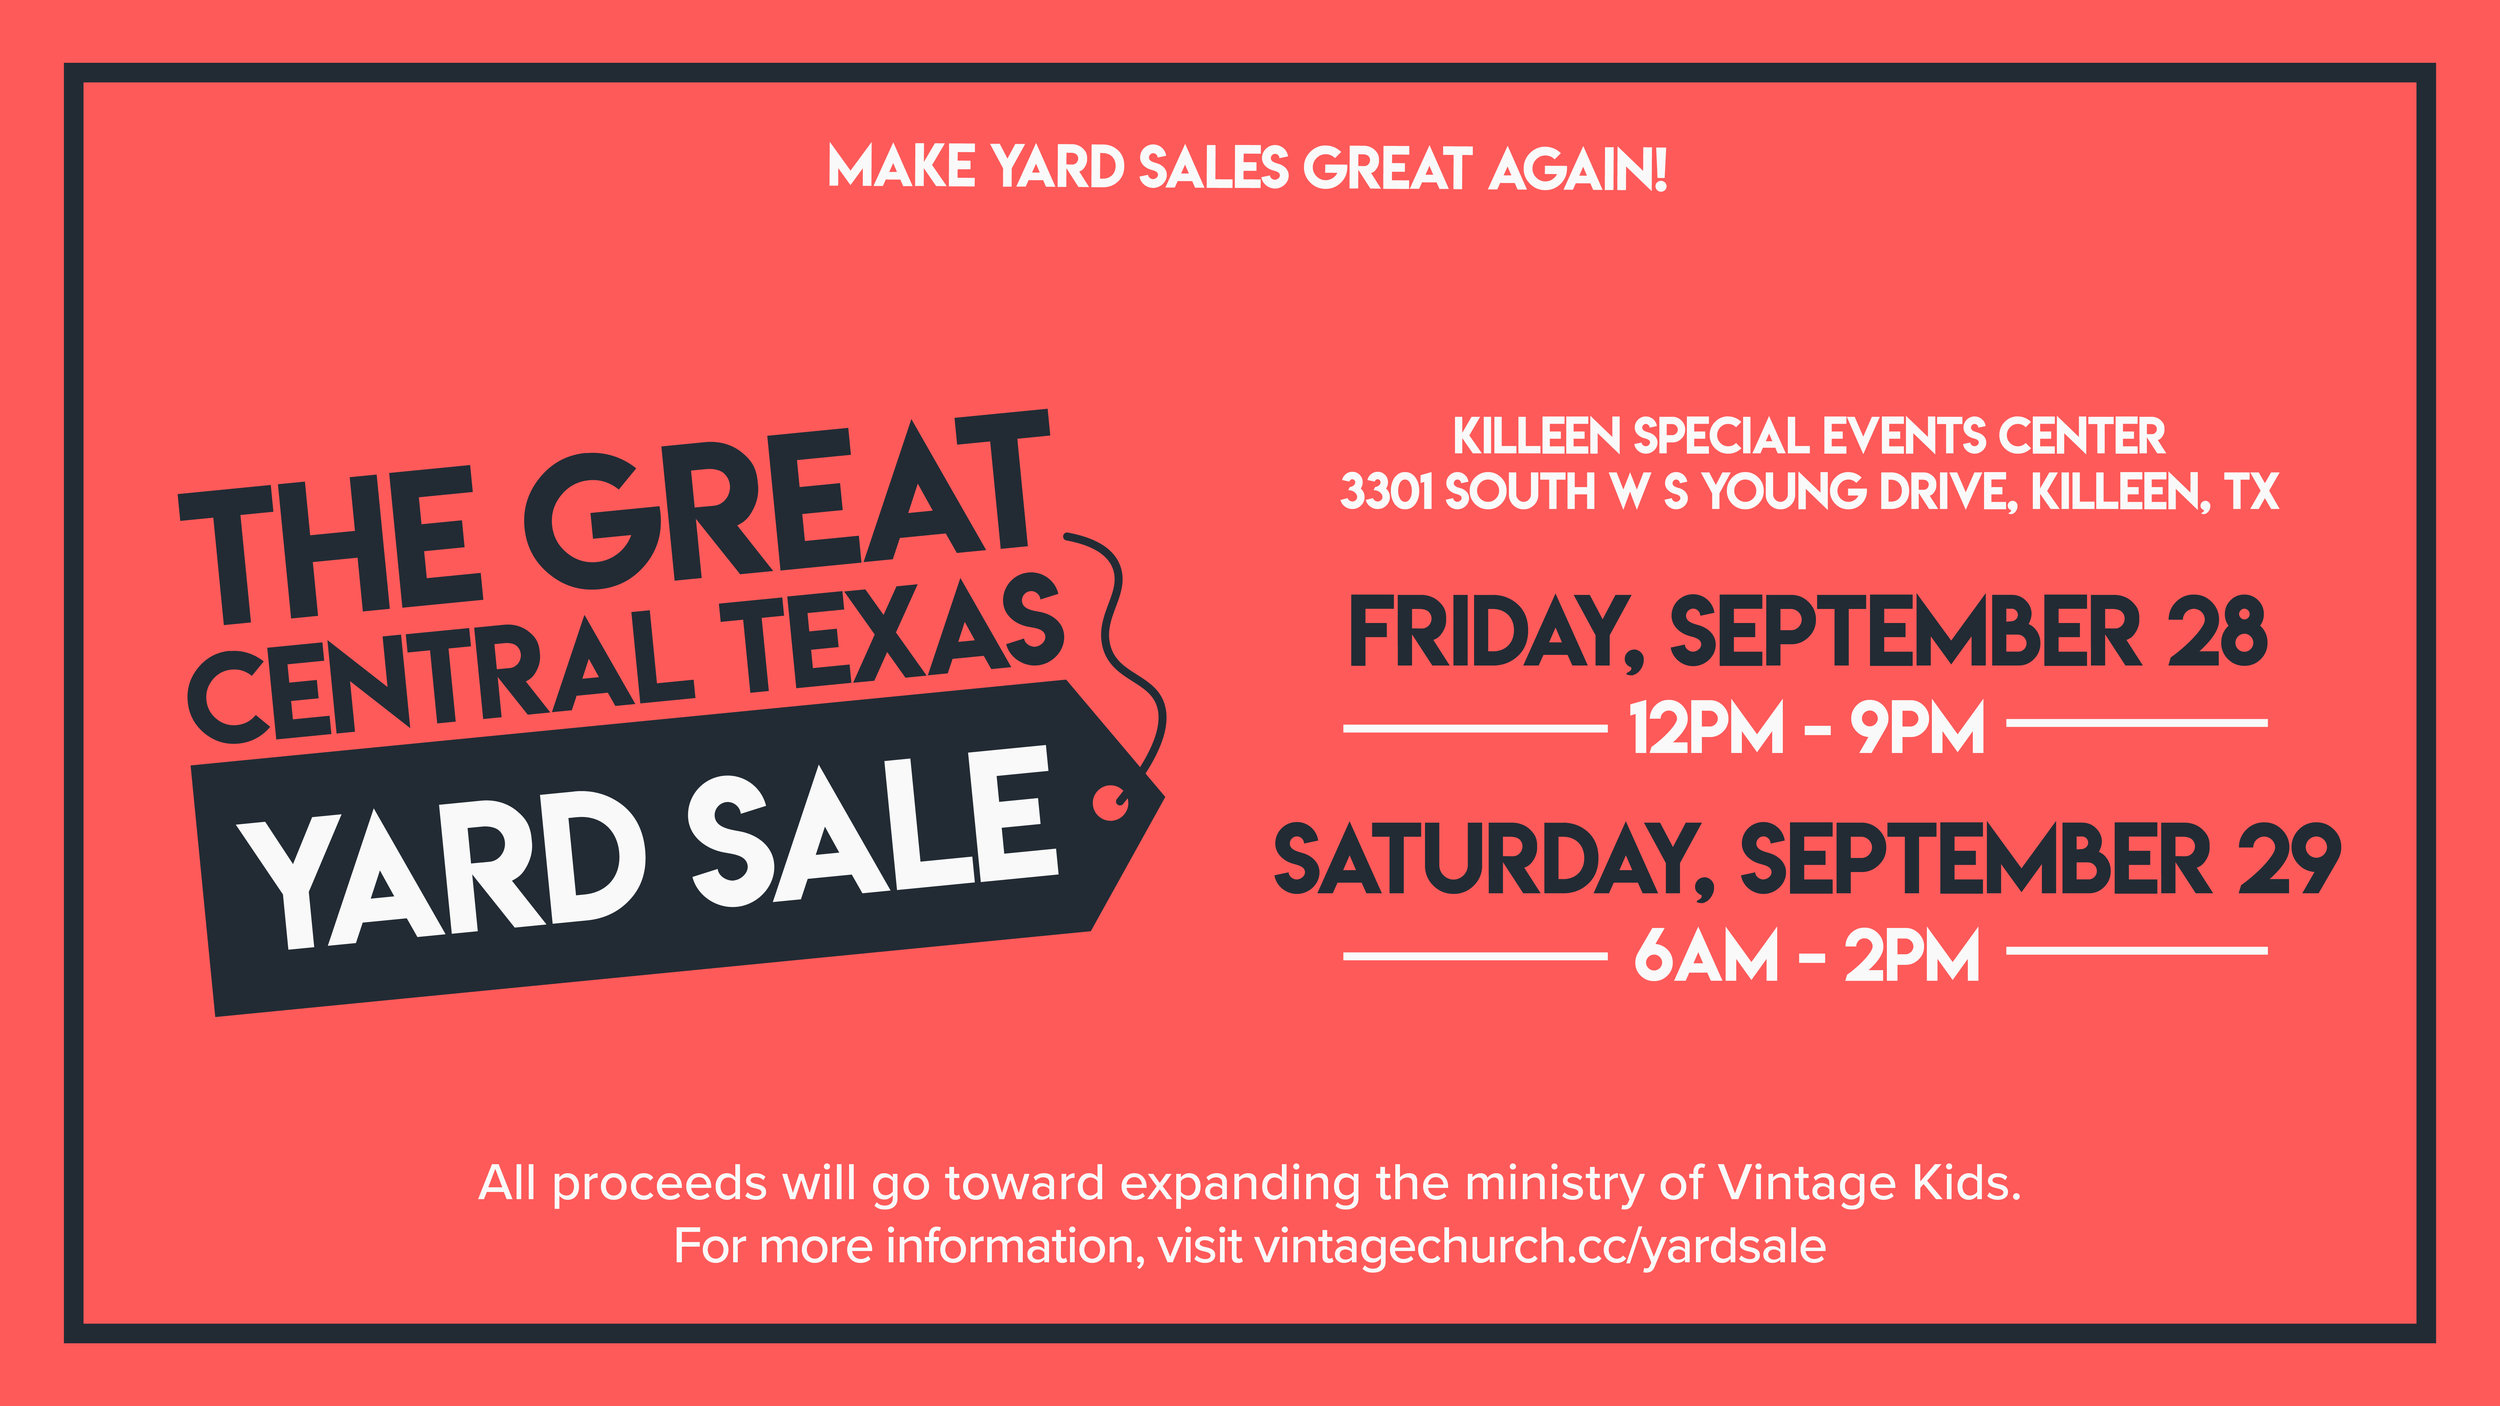 The Great Central Texas Yard Sale - Event Slide-01.jpg